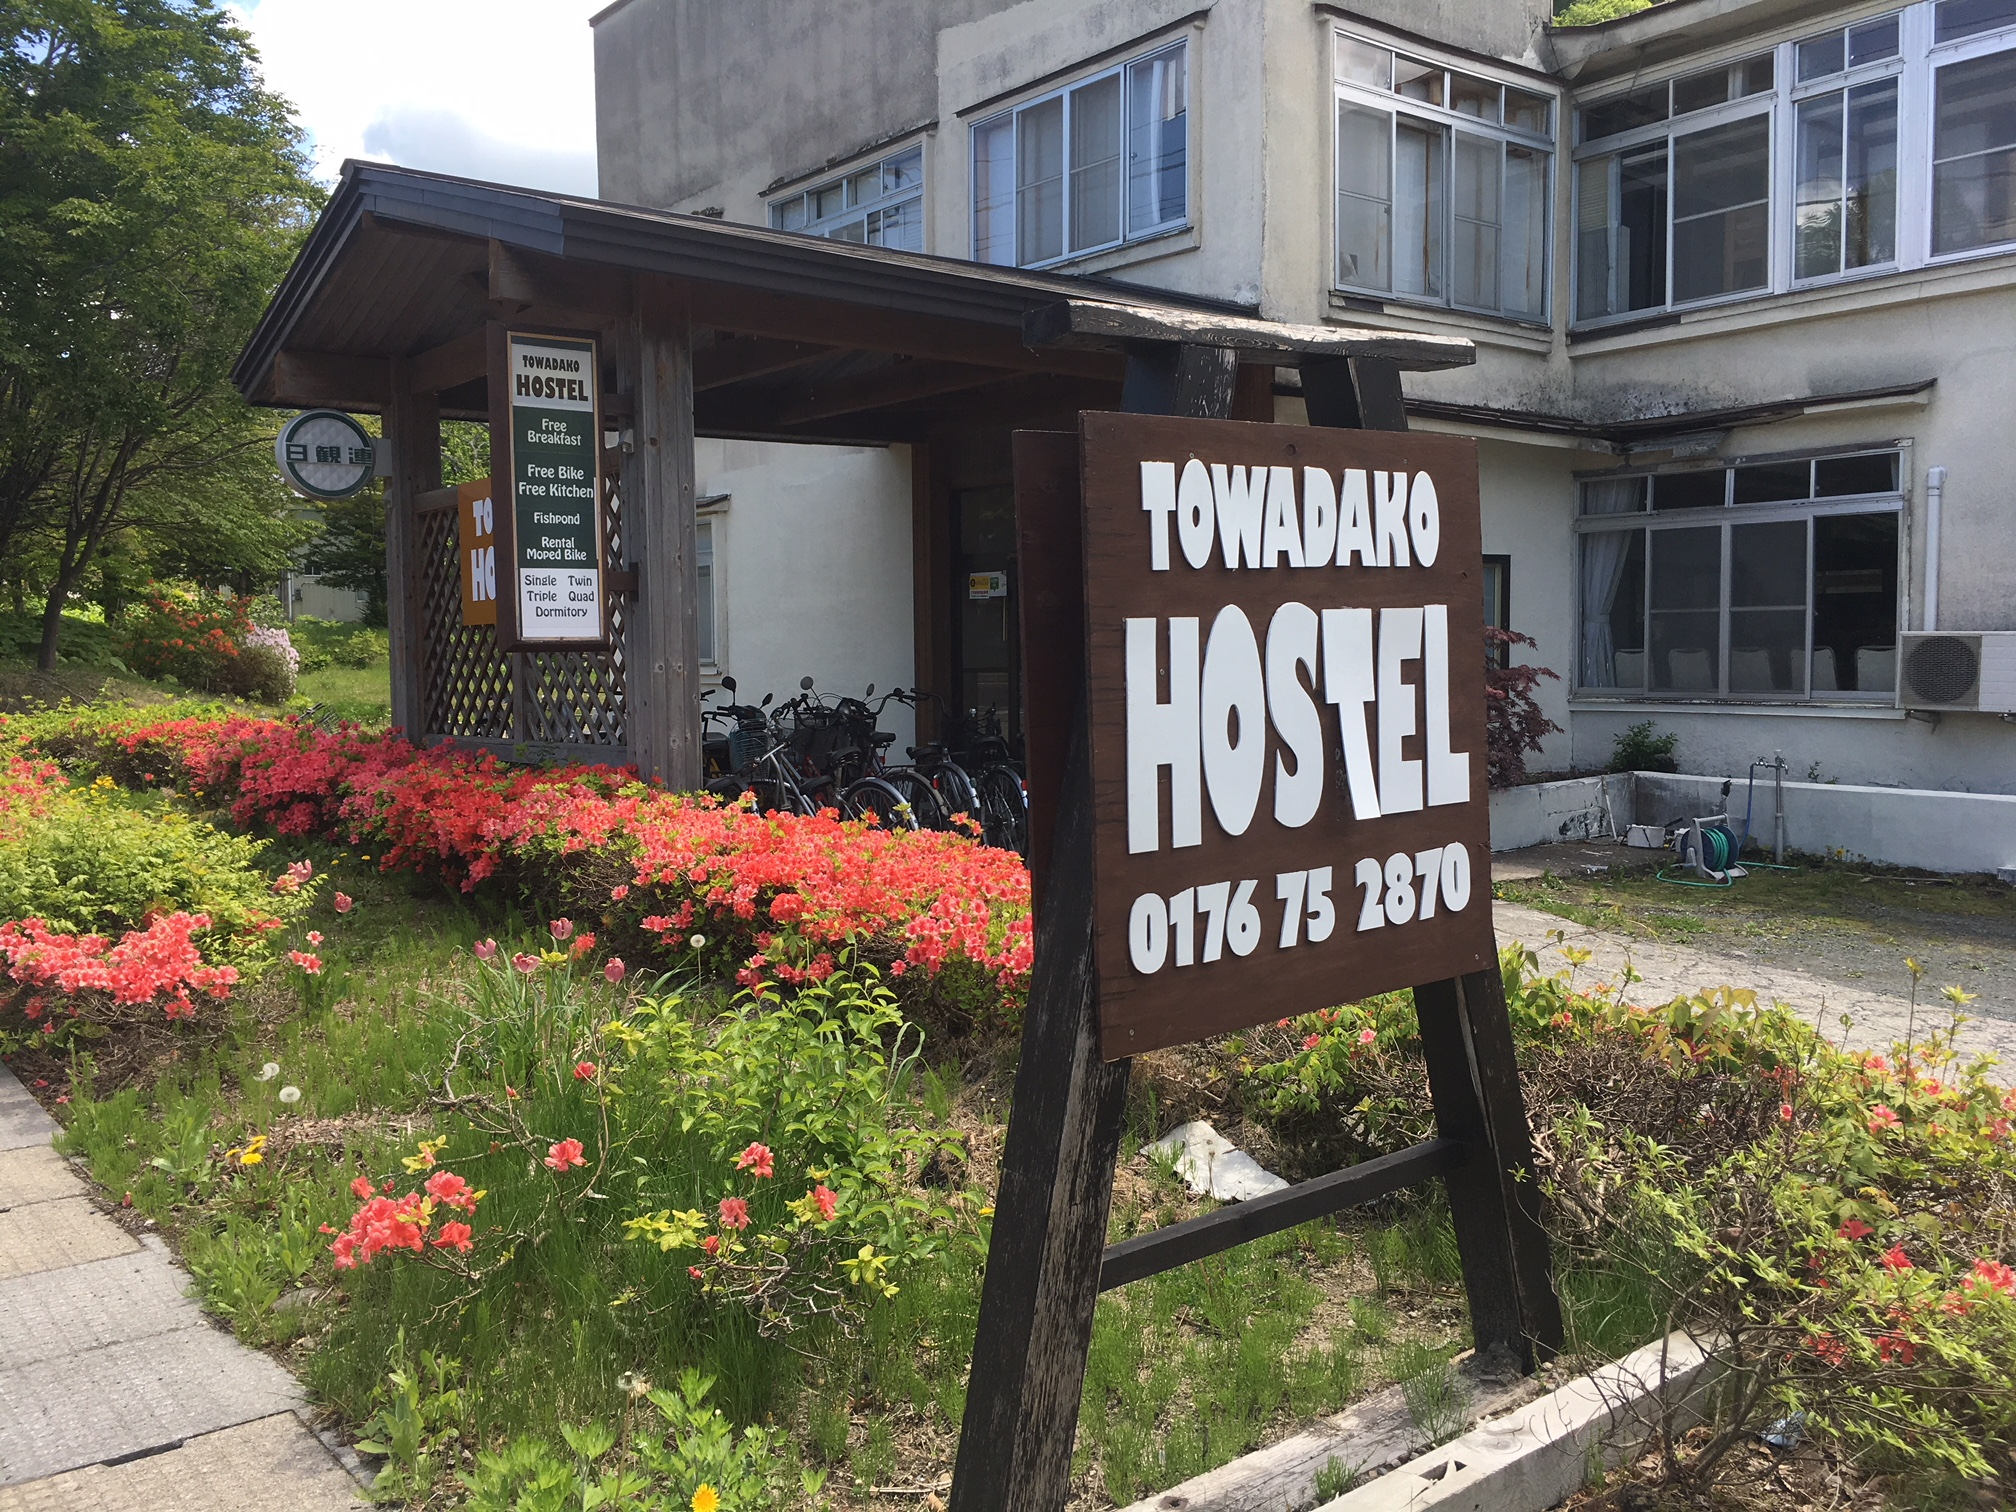 Towadako Hostelの施設画像